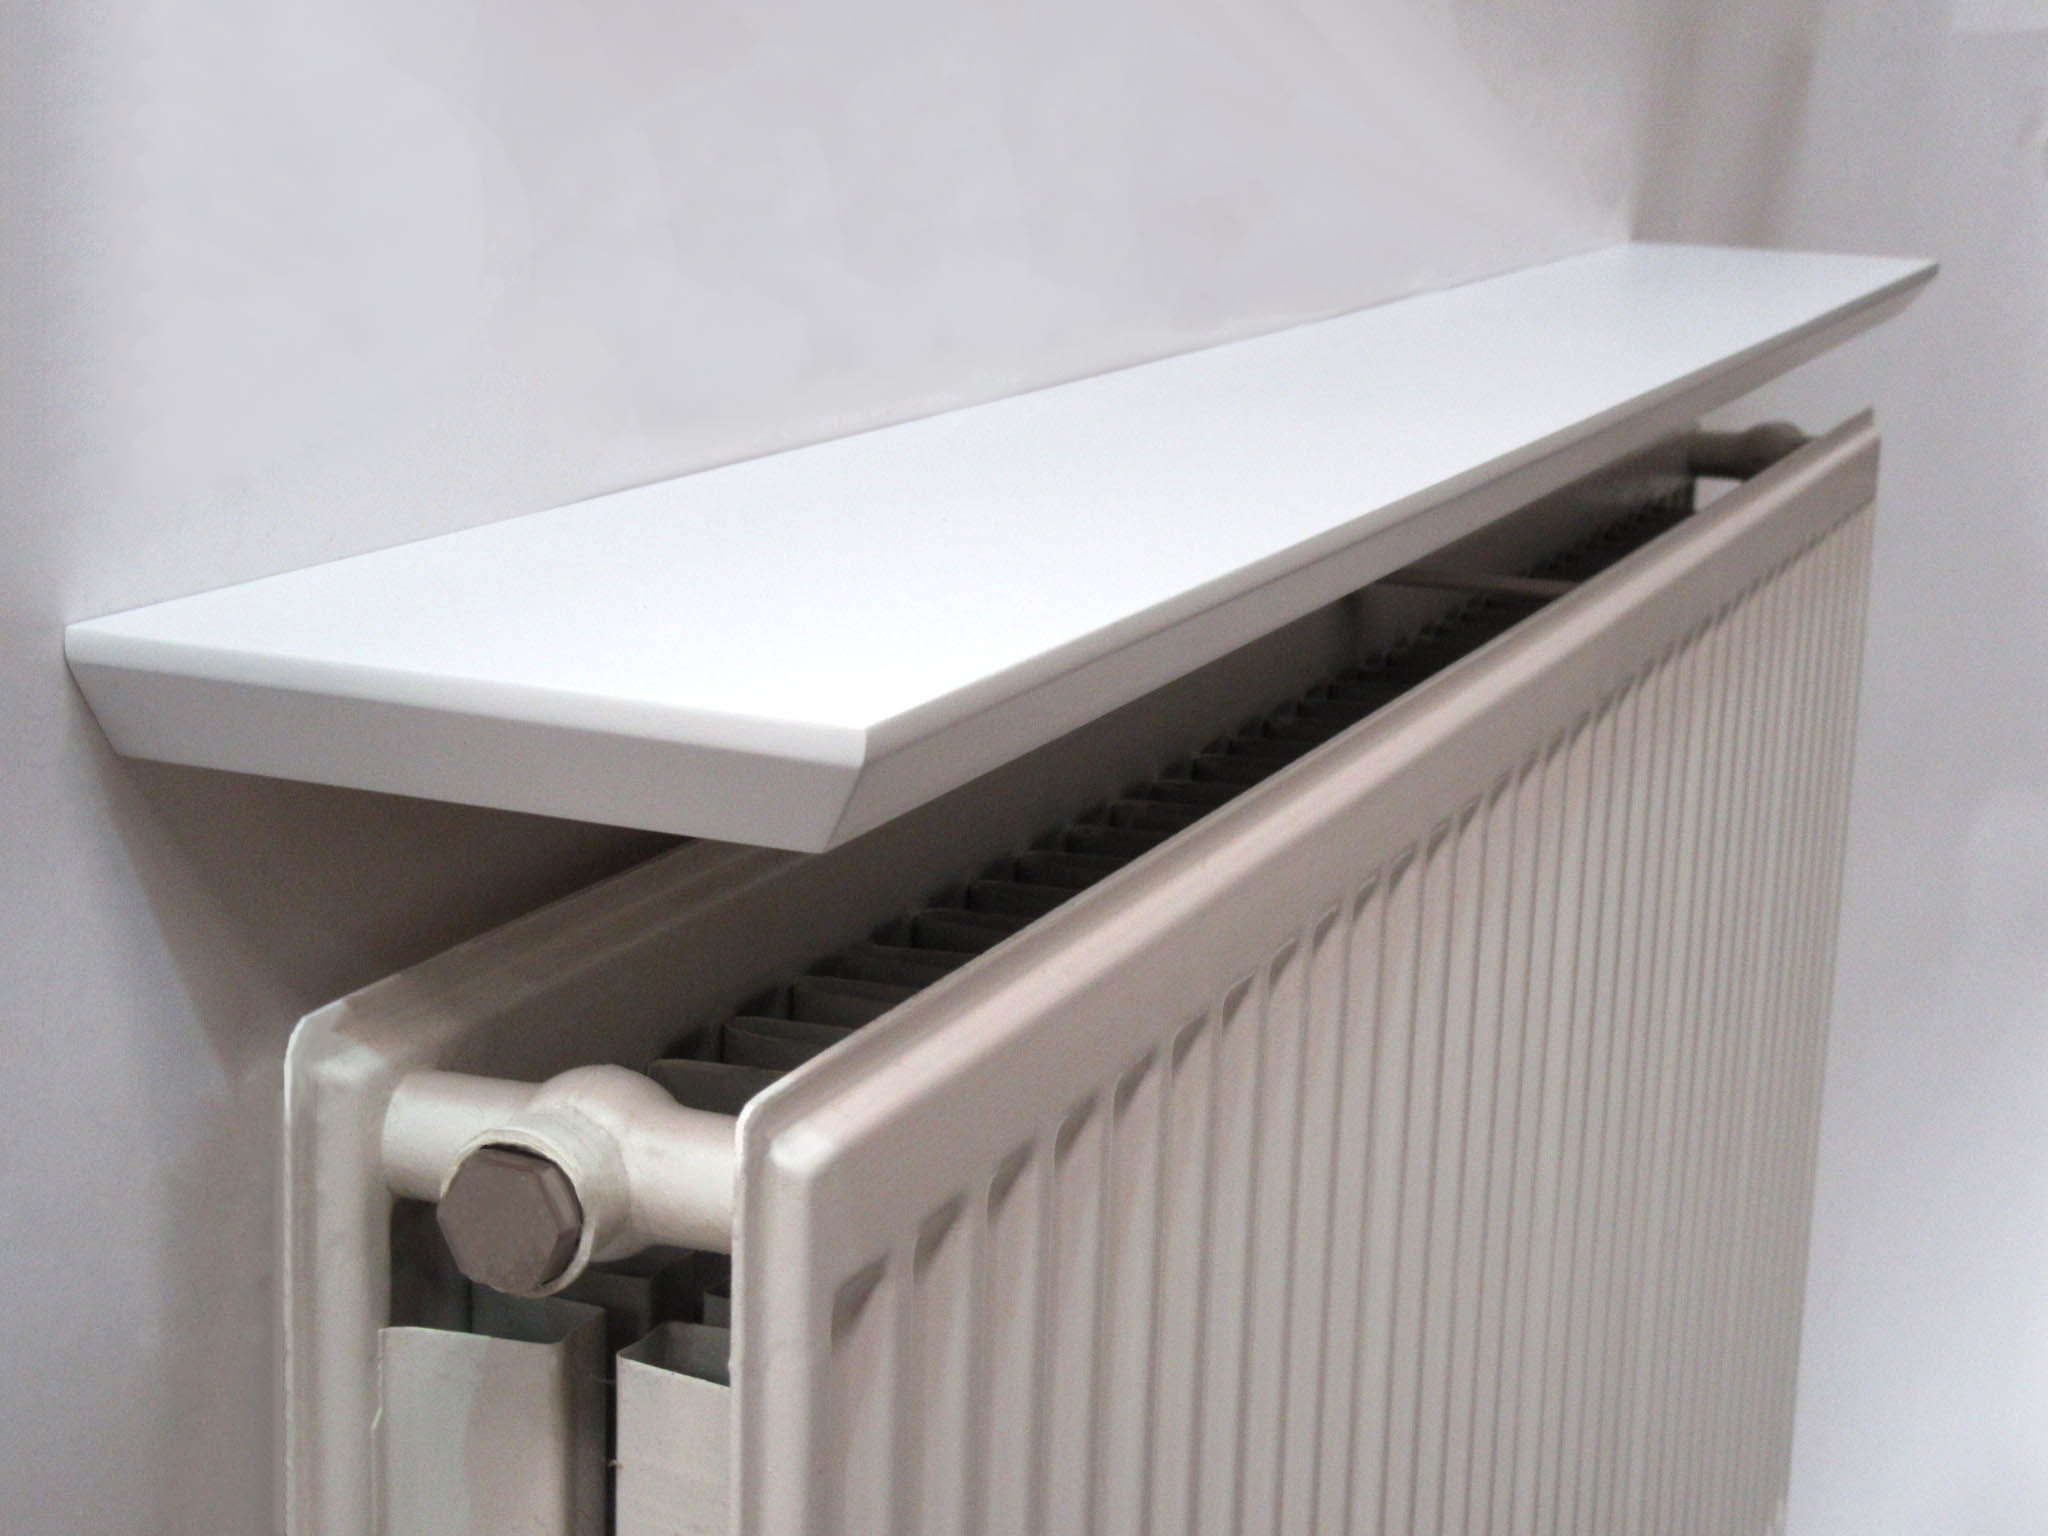 White Beveled Radiator Shelf 24x6x 1 Inch Thick